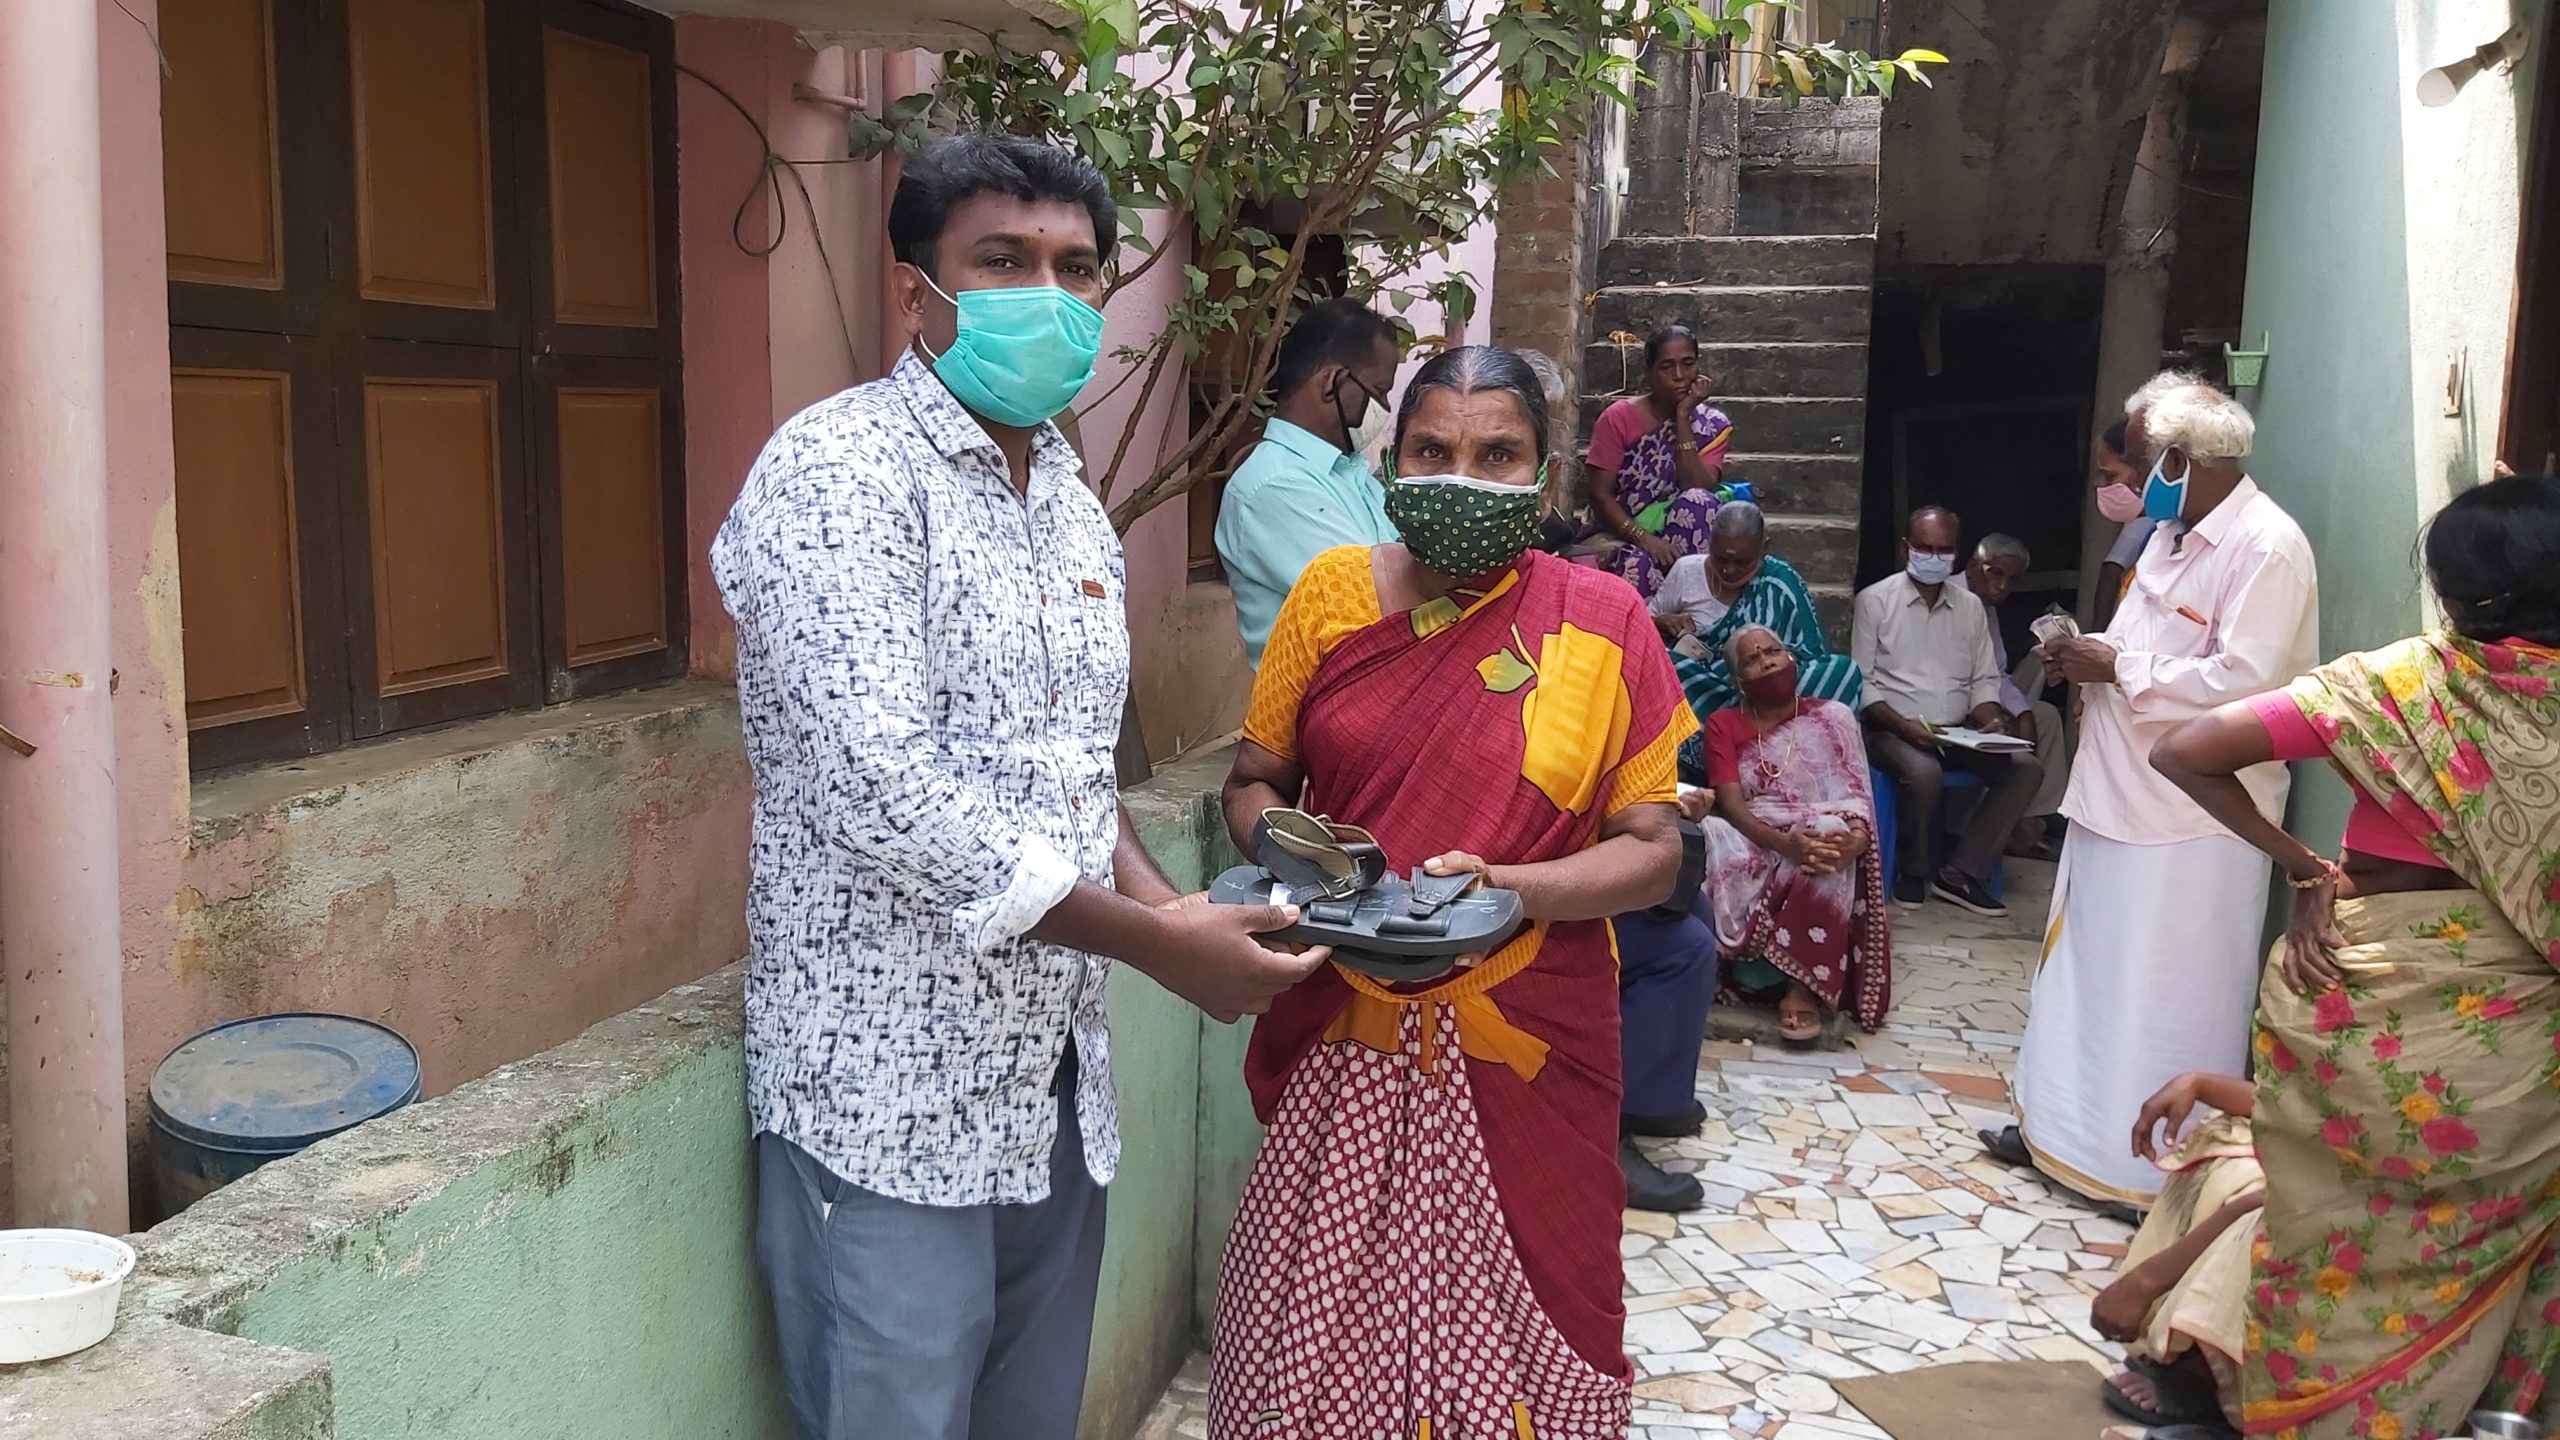 Praying through leprosy, one day at a time – Pushparani's story